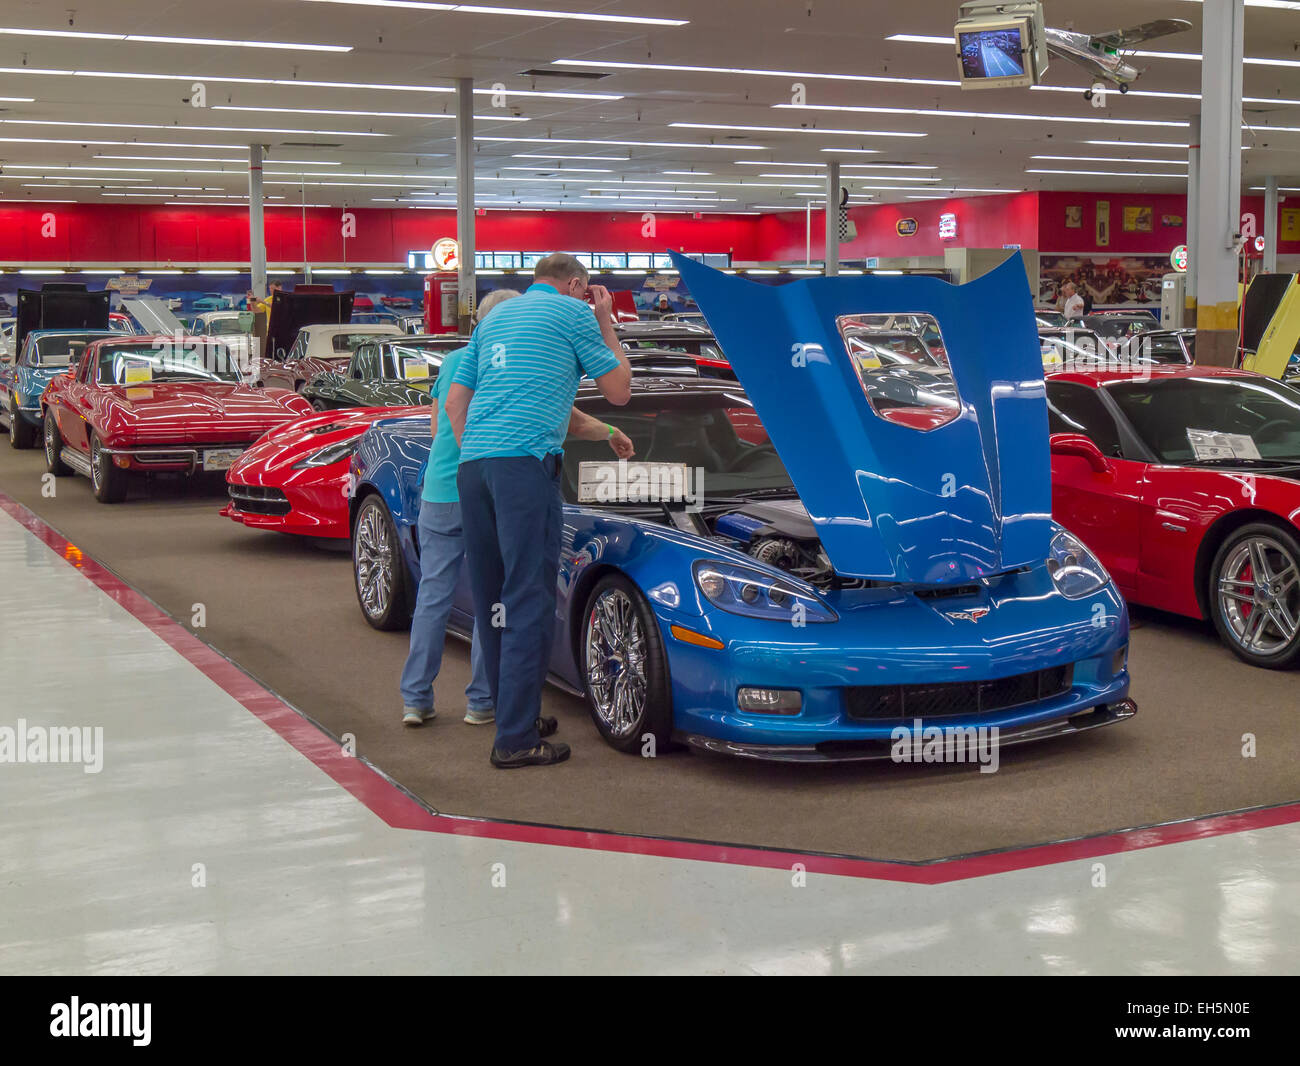 Rick Treworgy's Muscle Car City auto museum in Punta Gorda Florida - Stock Image